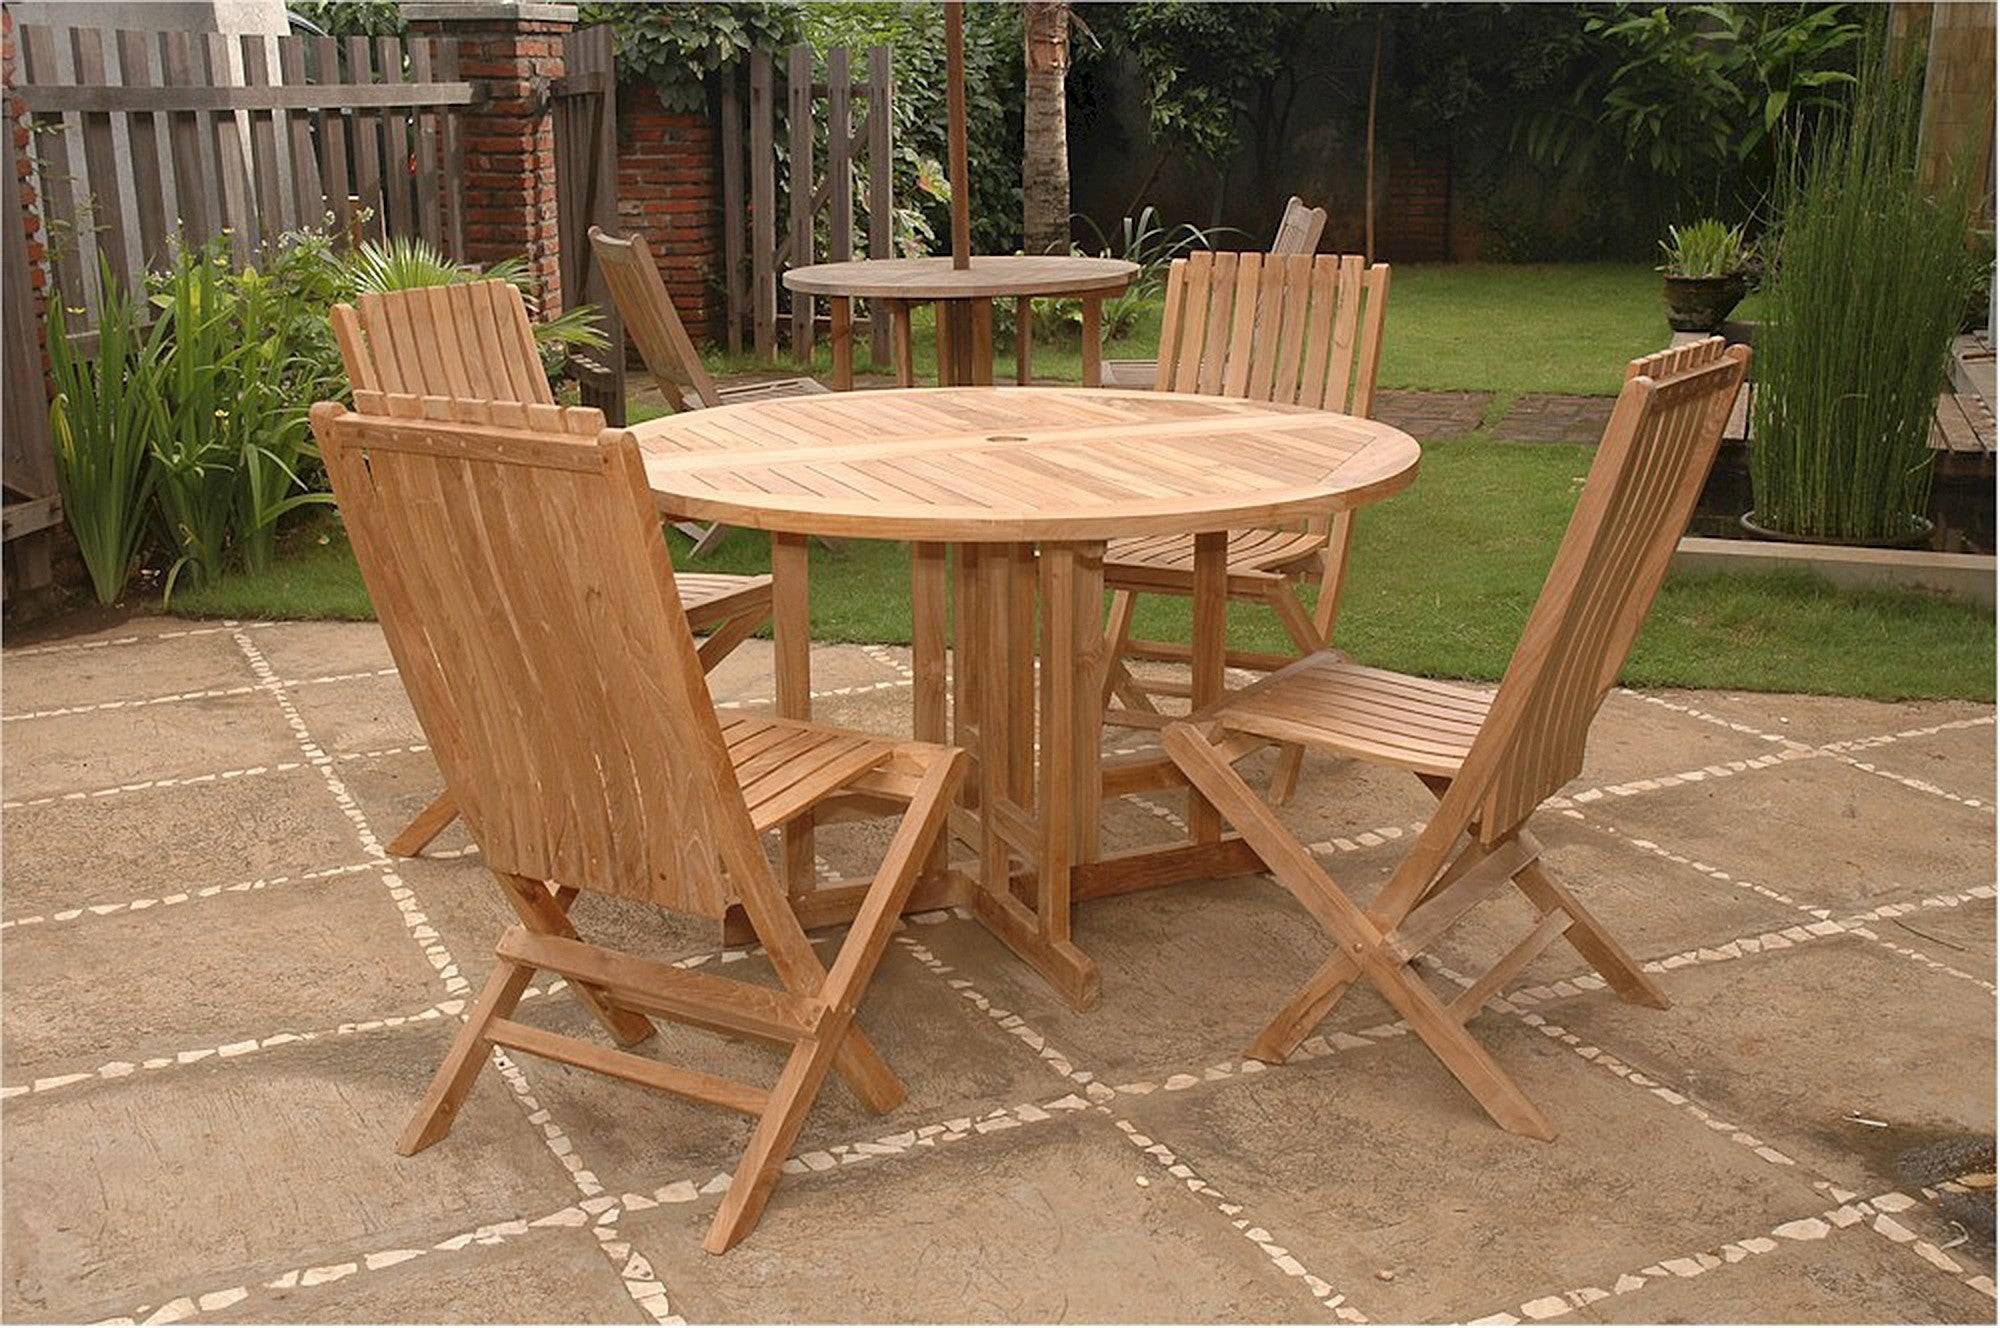 Anderson Round Butterfly Teak Folding Table Comfort Chair Set 34 Teakwood Central